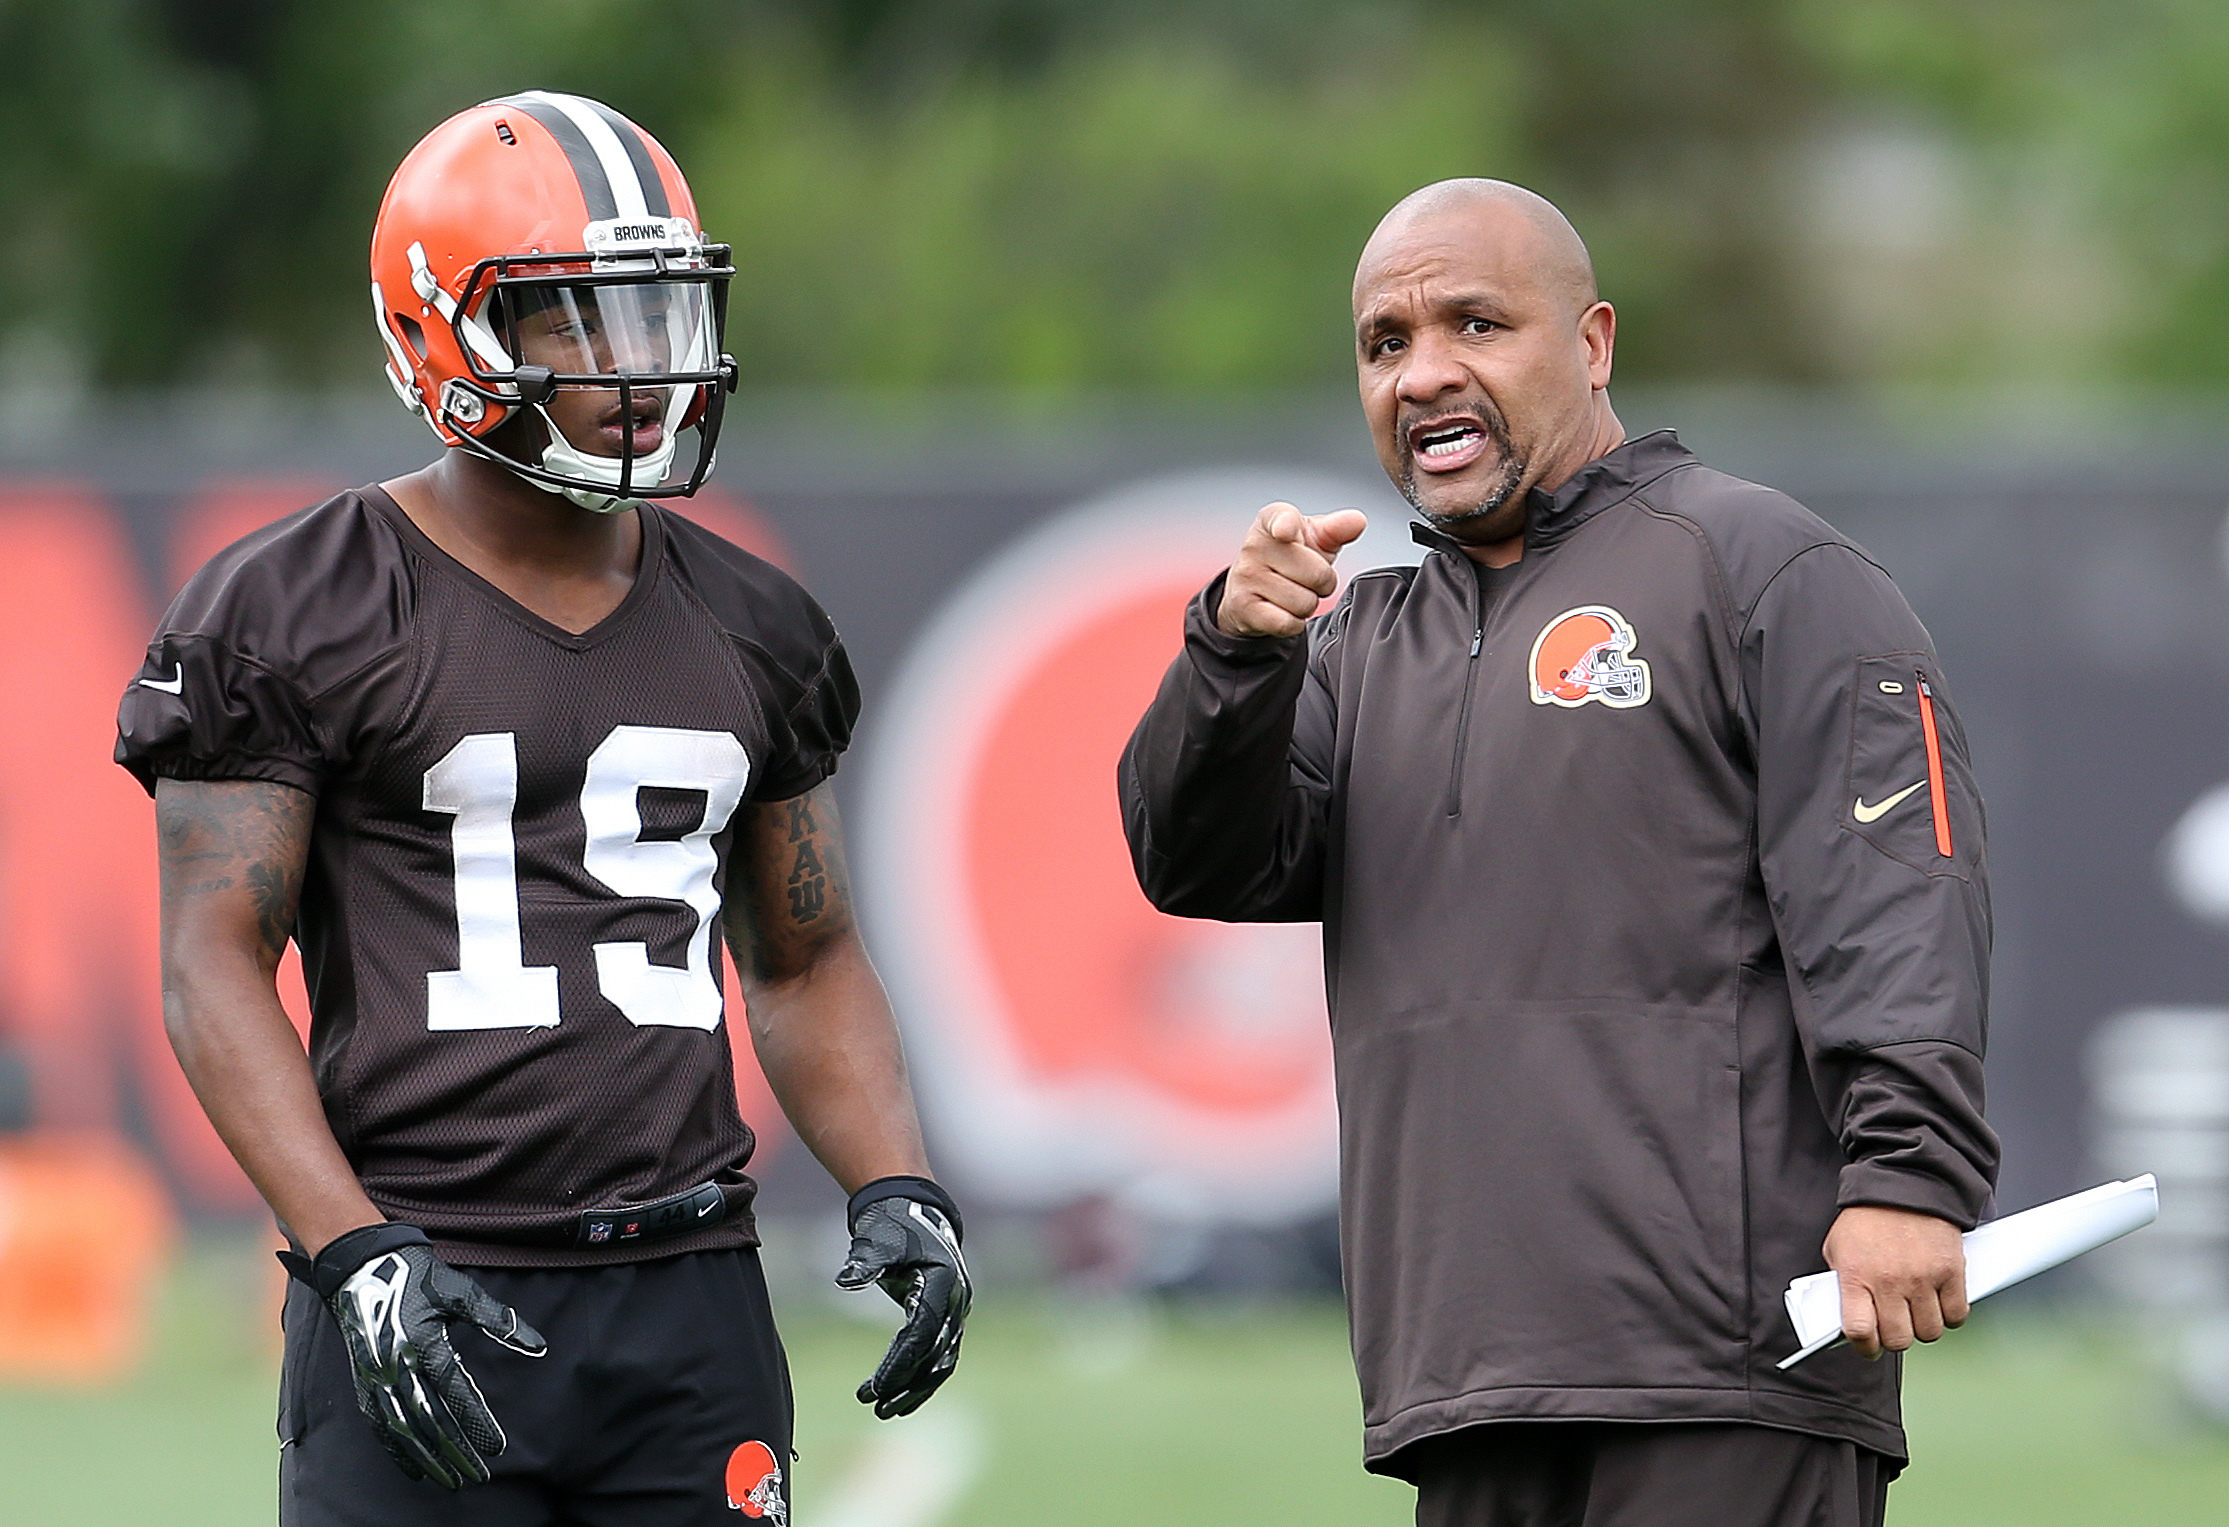 FILE - In this June 7, 2016, file photo, Cleveland Browns head coach Hue Jackson, right, gives directions to Cleveland Browns wide receiver Corey Coleman during NFL football mini camp at the practice facility,in Berea, Ohio. Cleveland will open the season